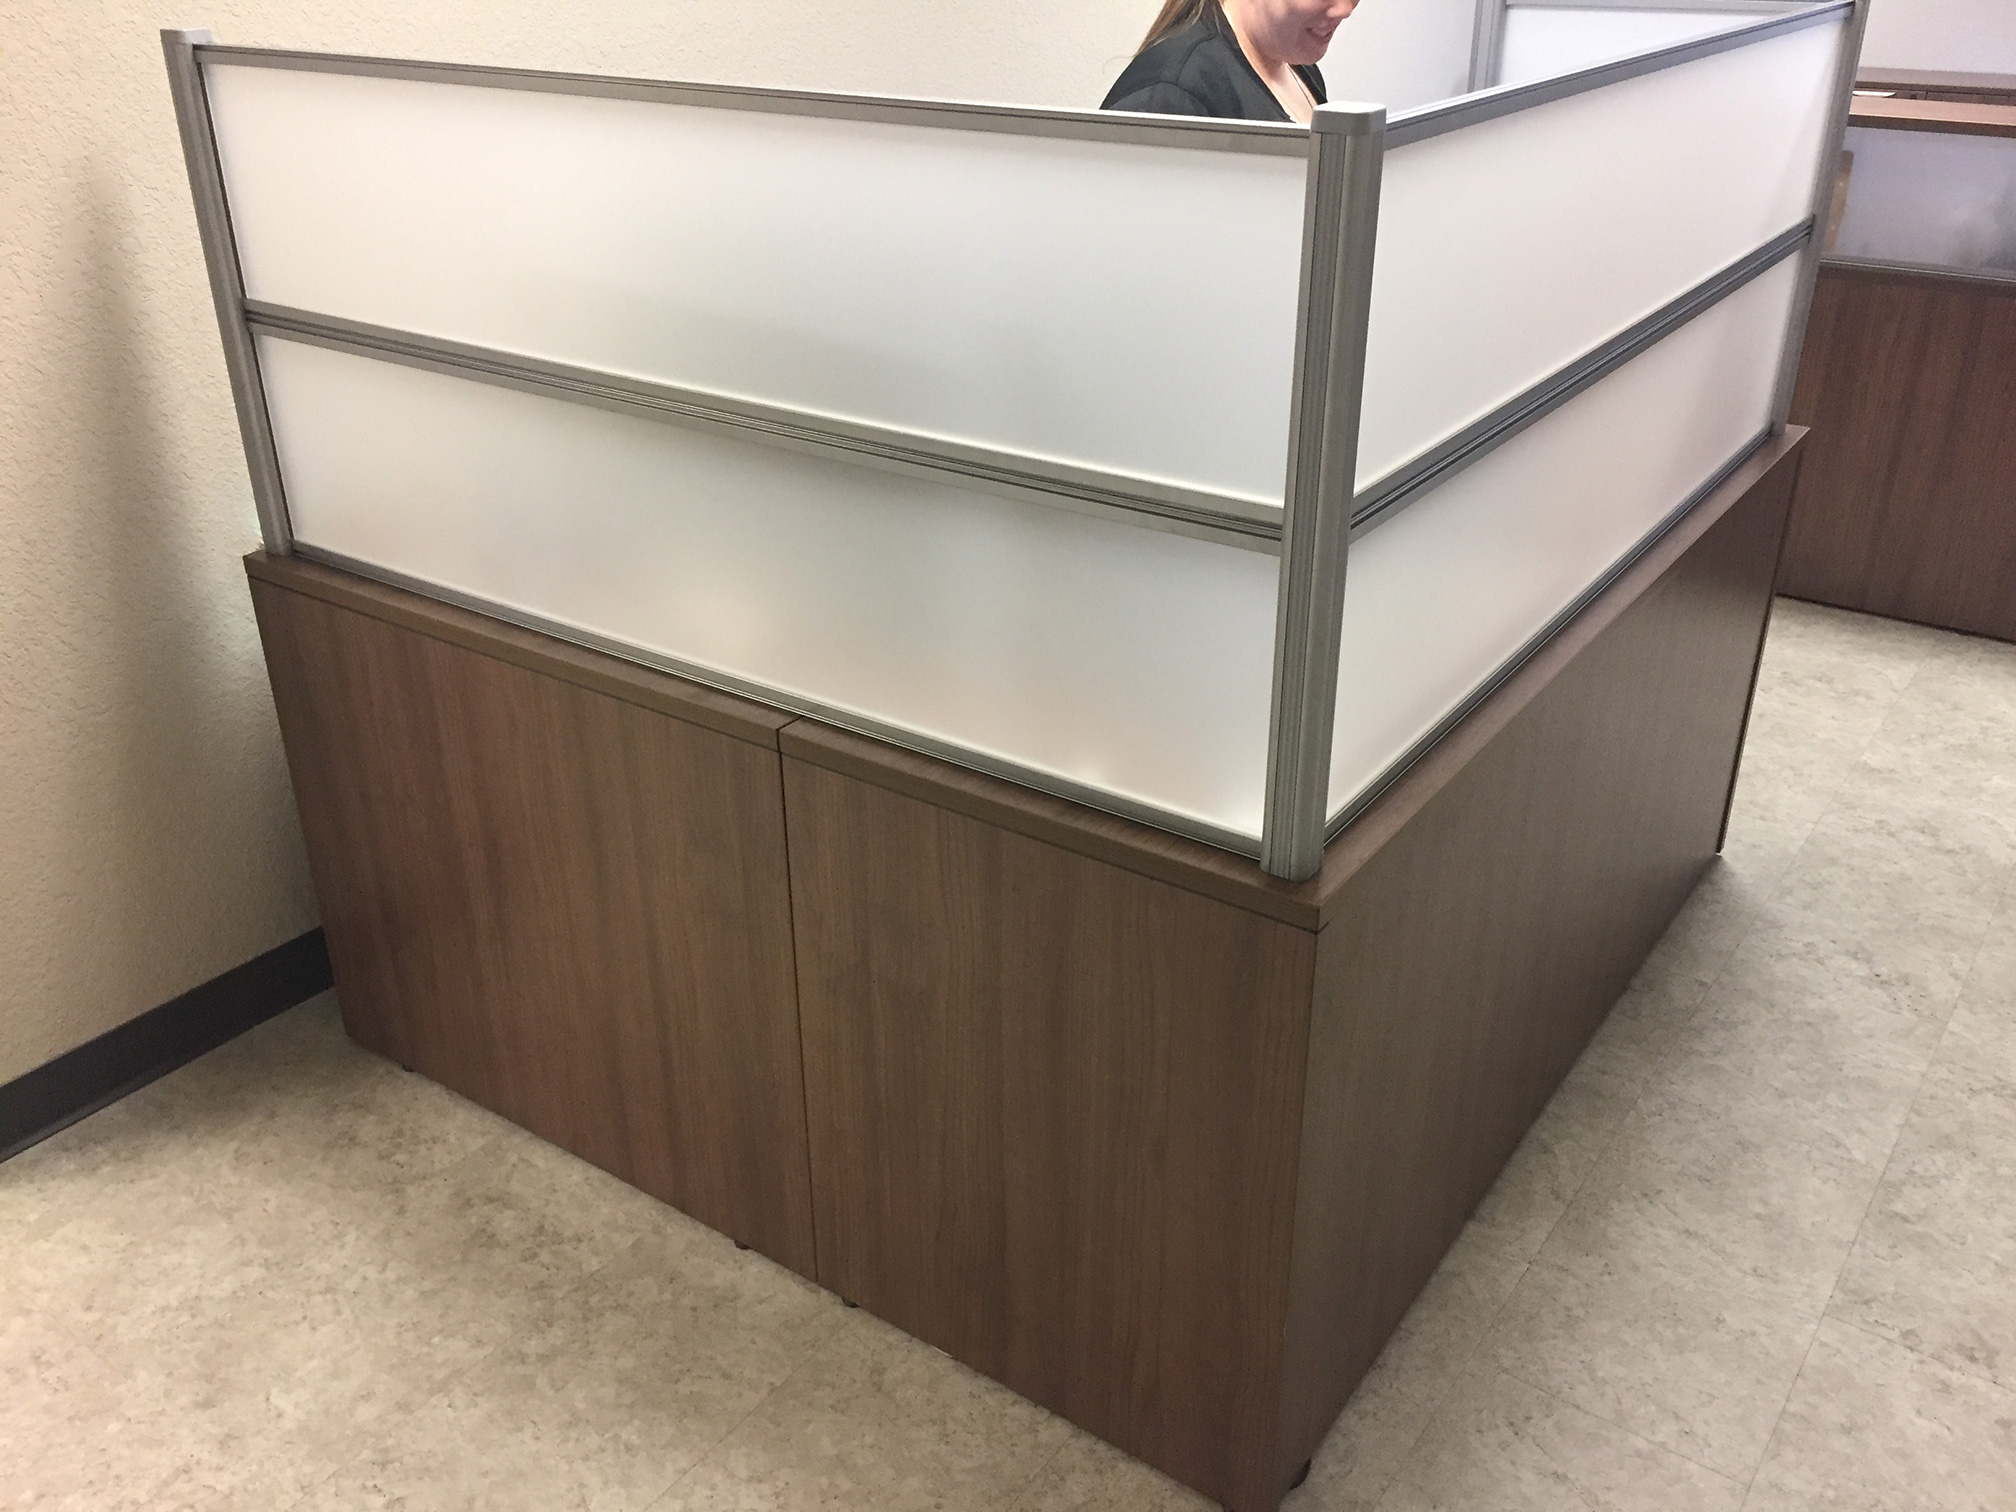 reception-desks-sarasota-florida-manasota-office-supplies-llc.jpg